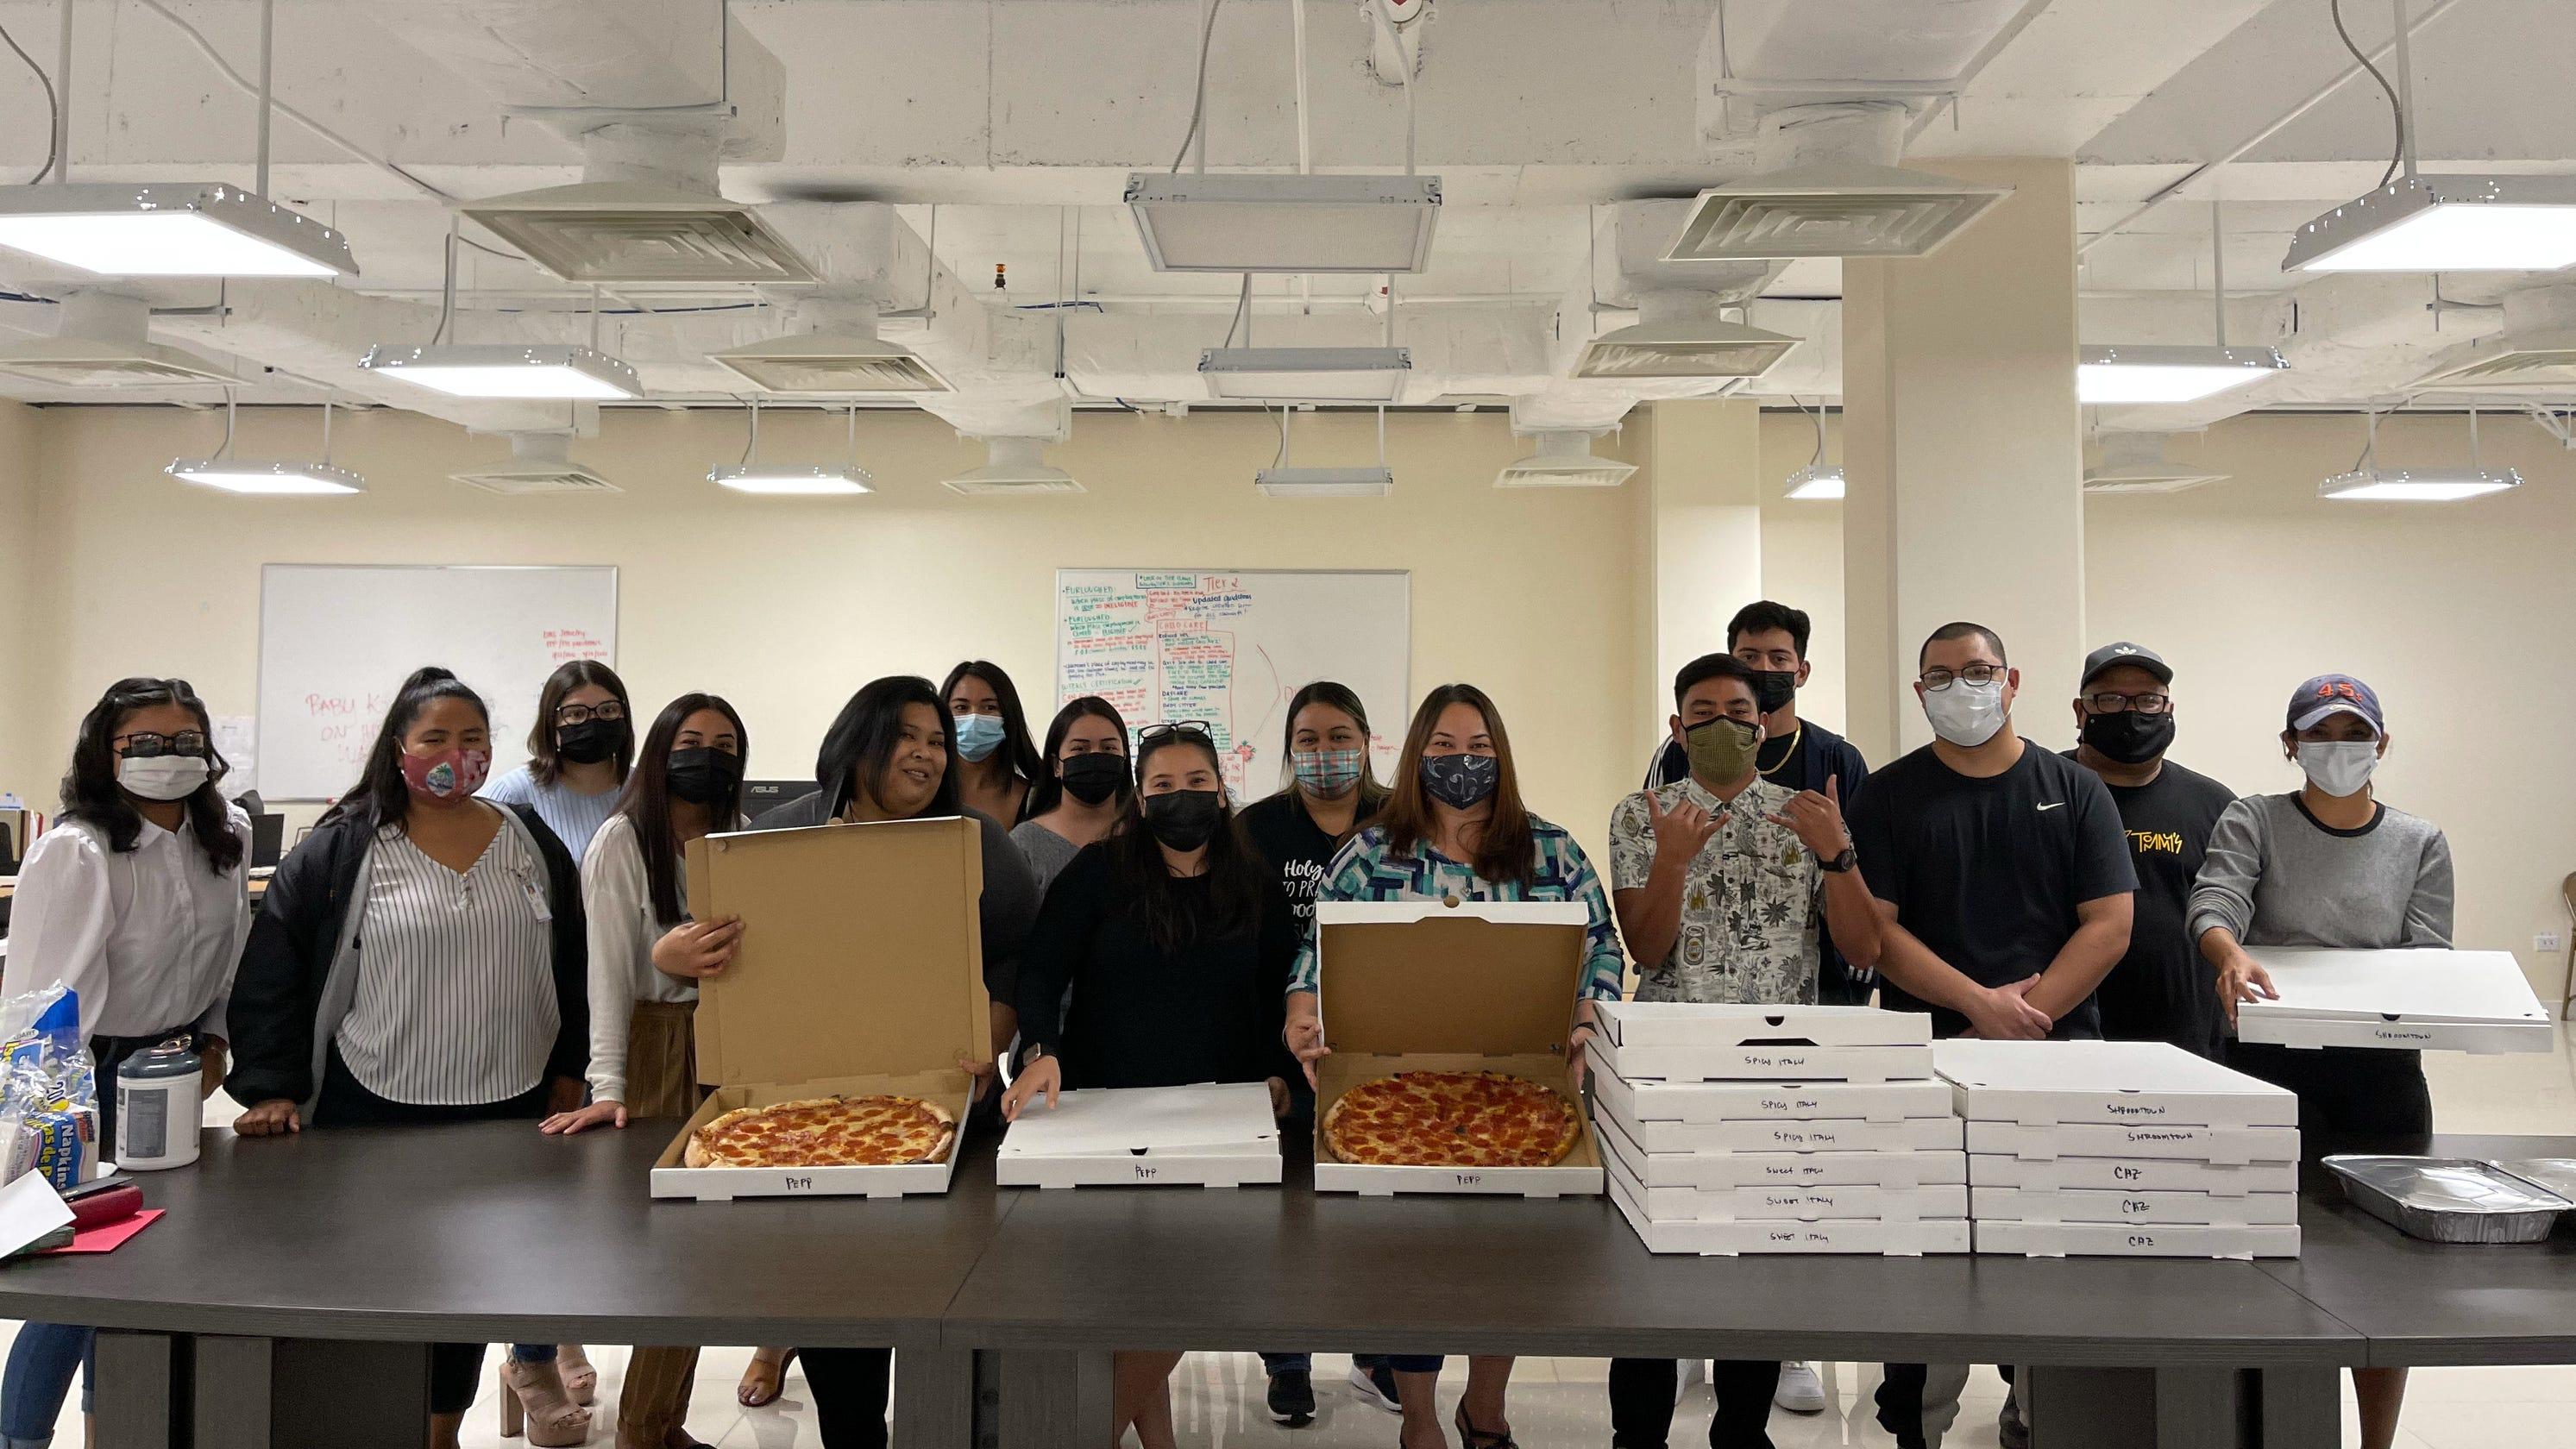 Tommy's Pizza donates lunch to Pandemic Unemployment Assistance center